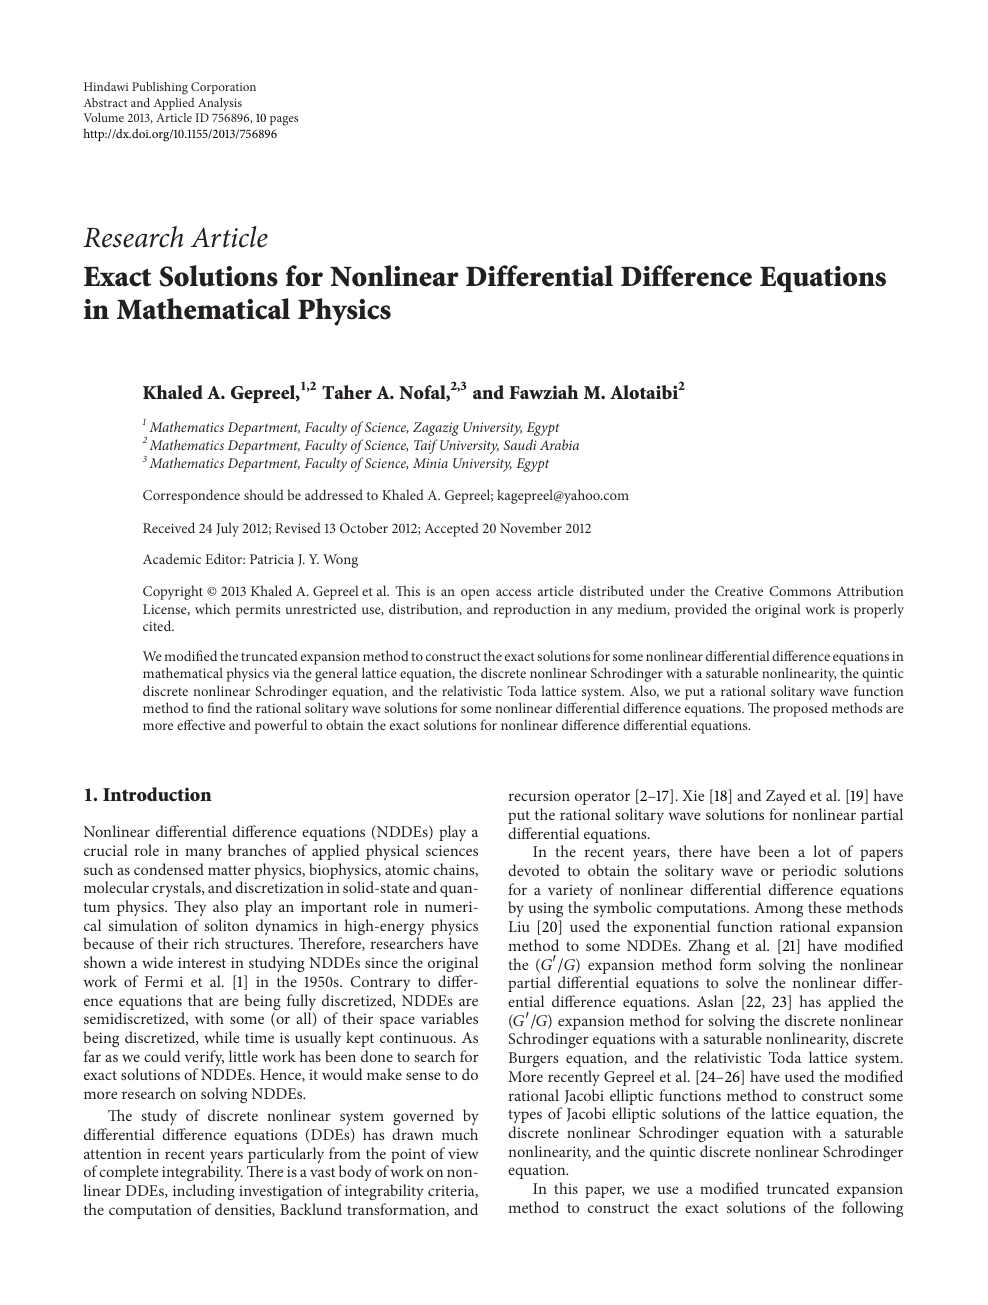 Exact Solutions for Nonlinear Differential Difference